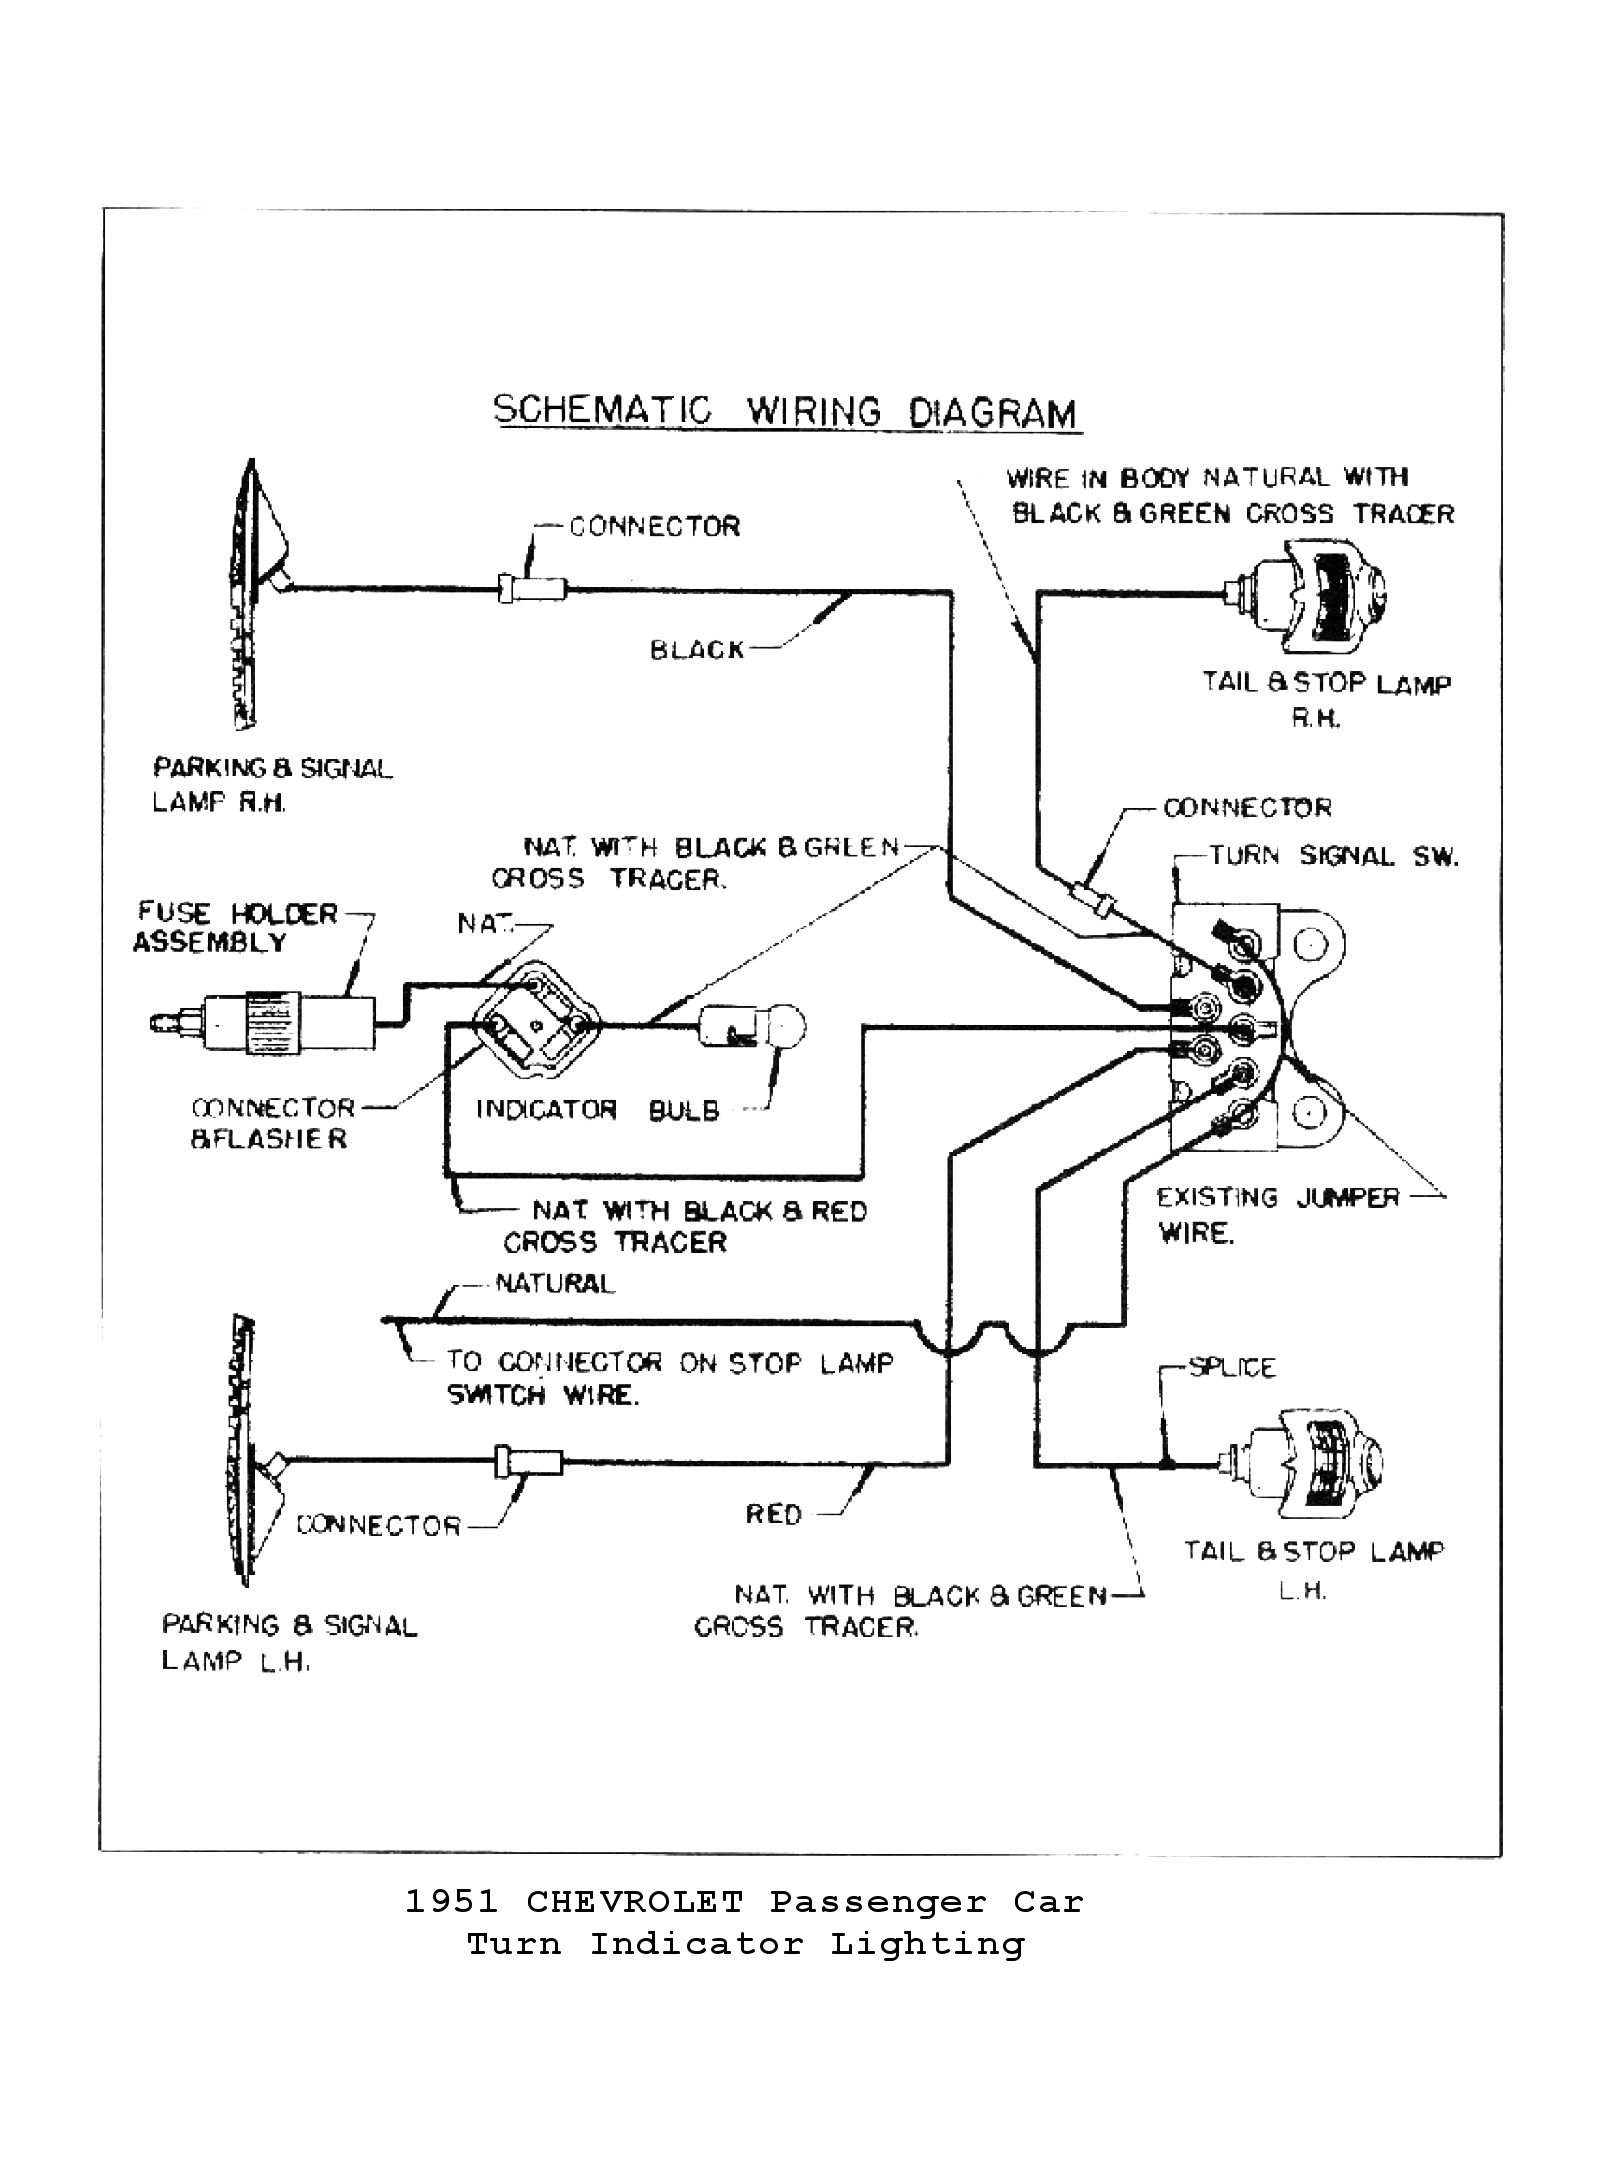 1954 chevrolet ignition switch wiring diagram technical 1954 gm turn signal wiring diagram